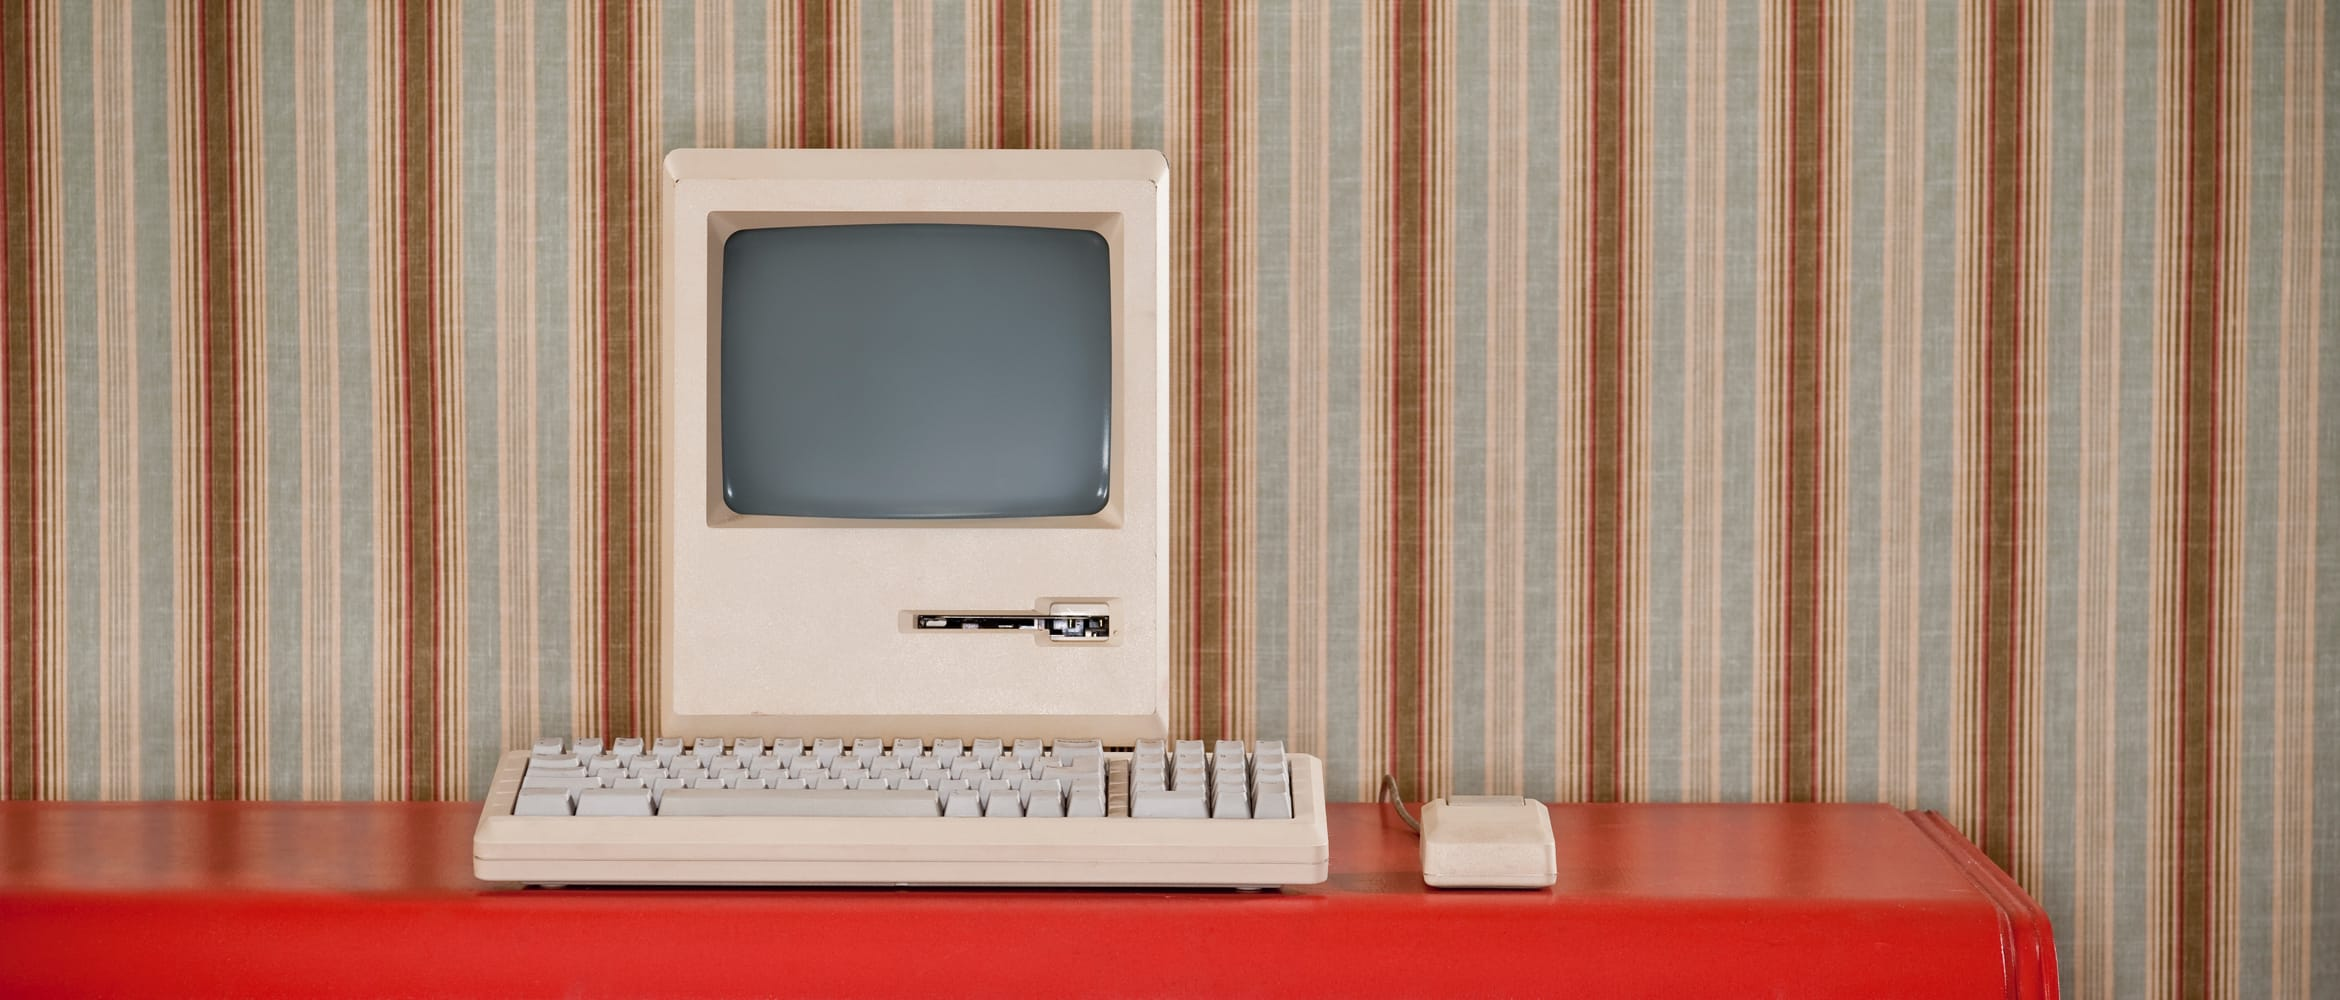 an old computer sits on a desk in a retro setting